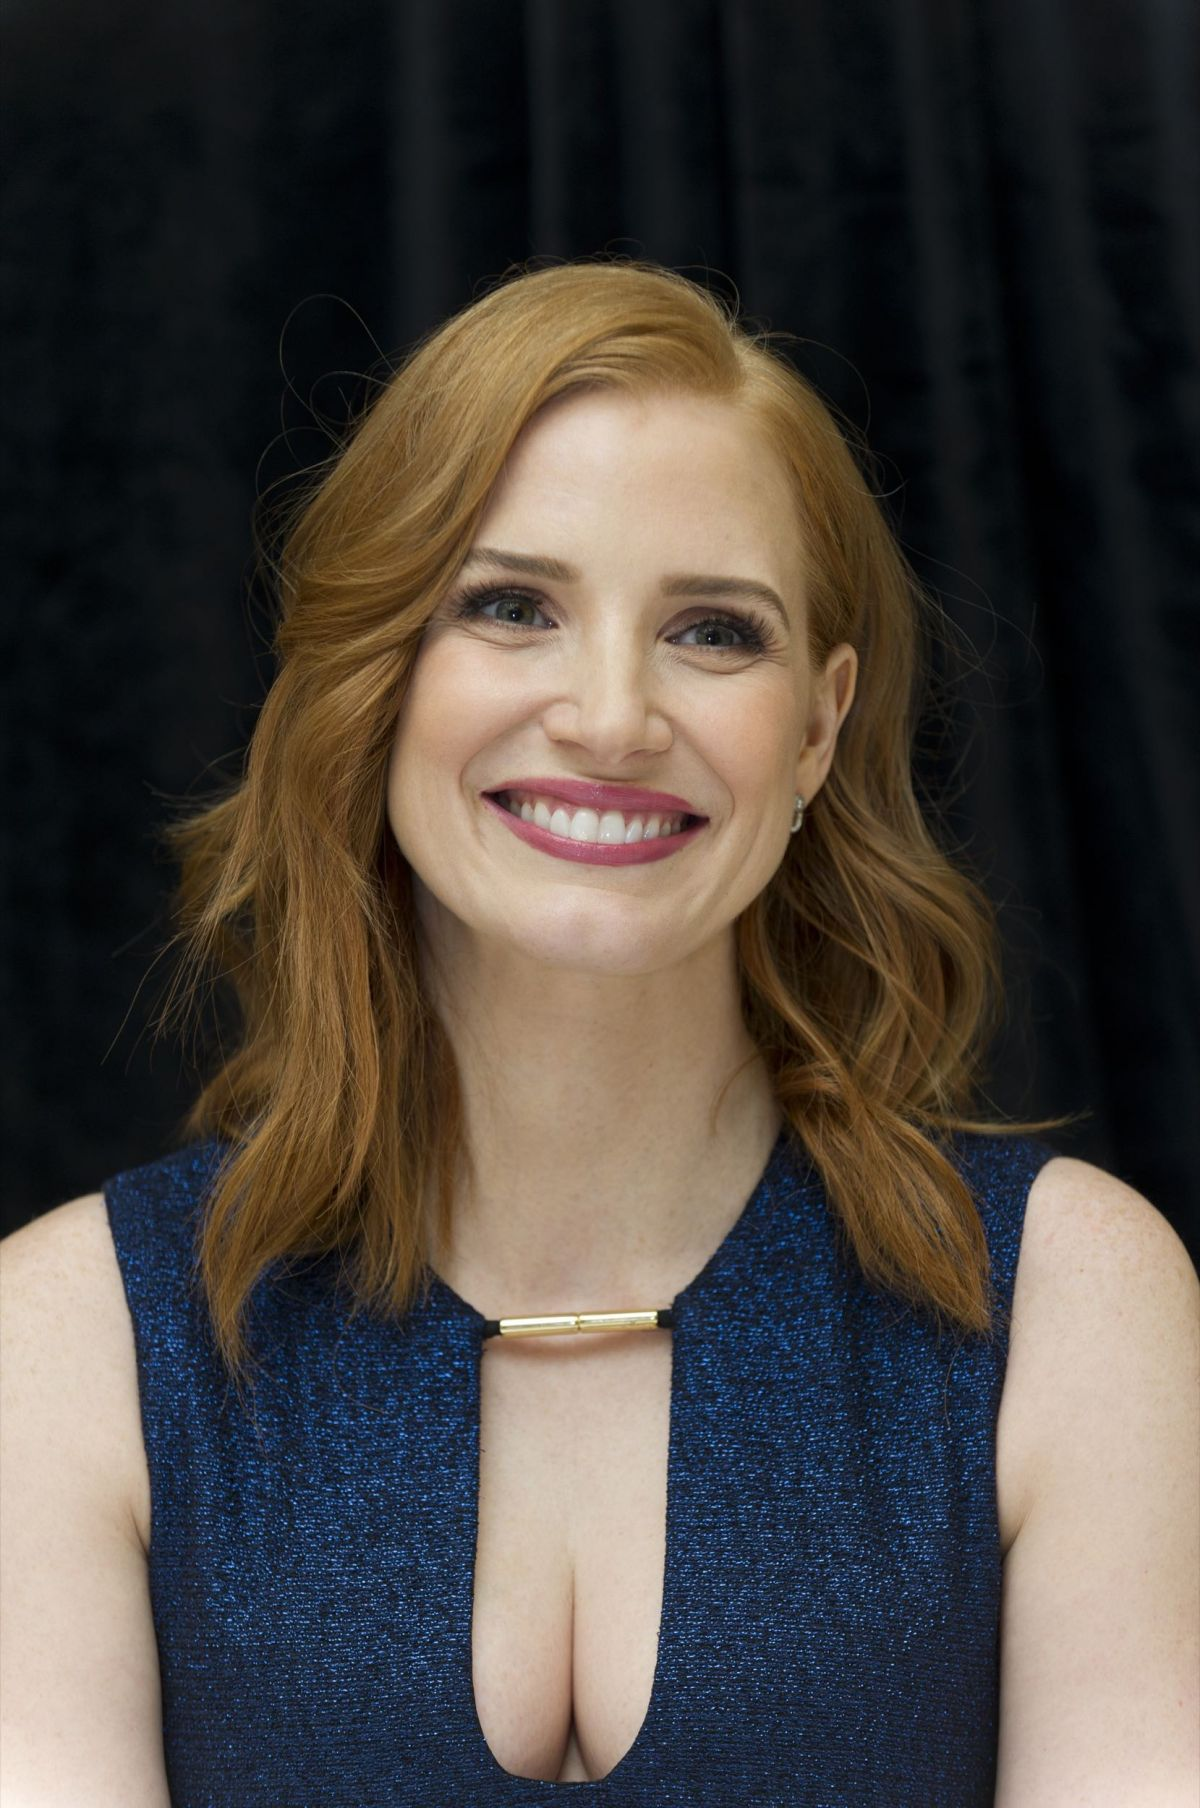 JESSICA CHASTAIN at The Martian Press Conference in New York ... Jessica Chastain